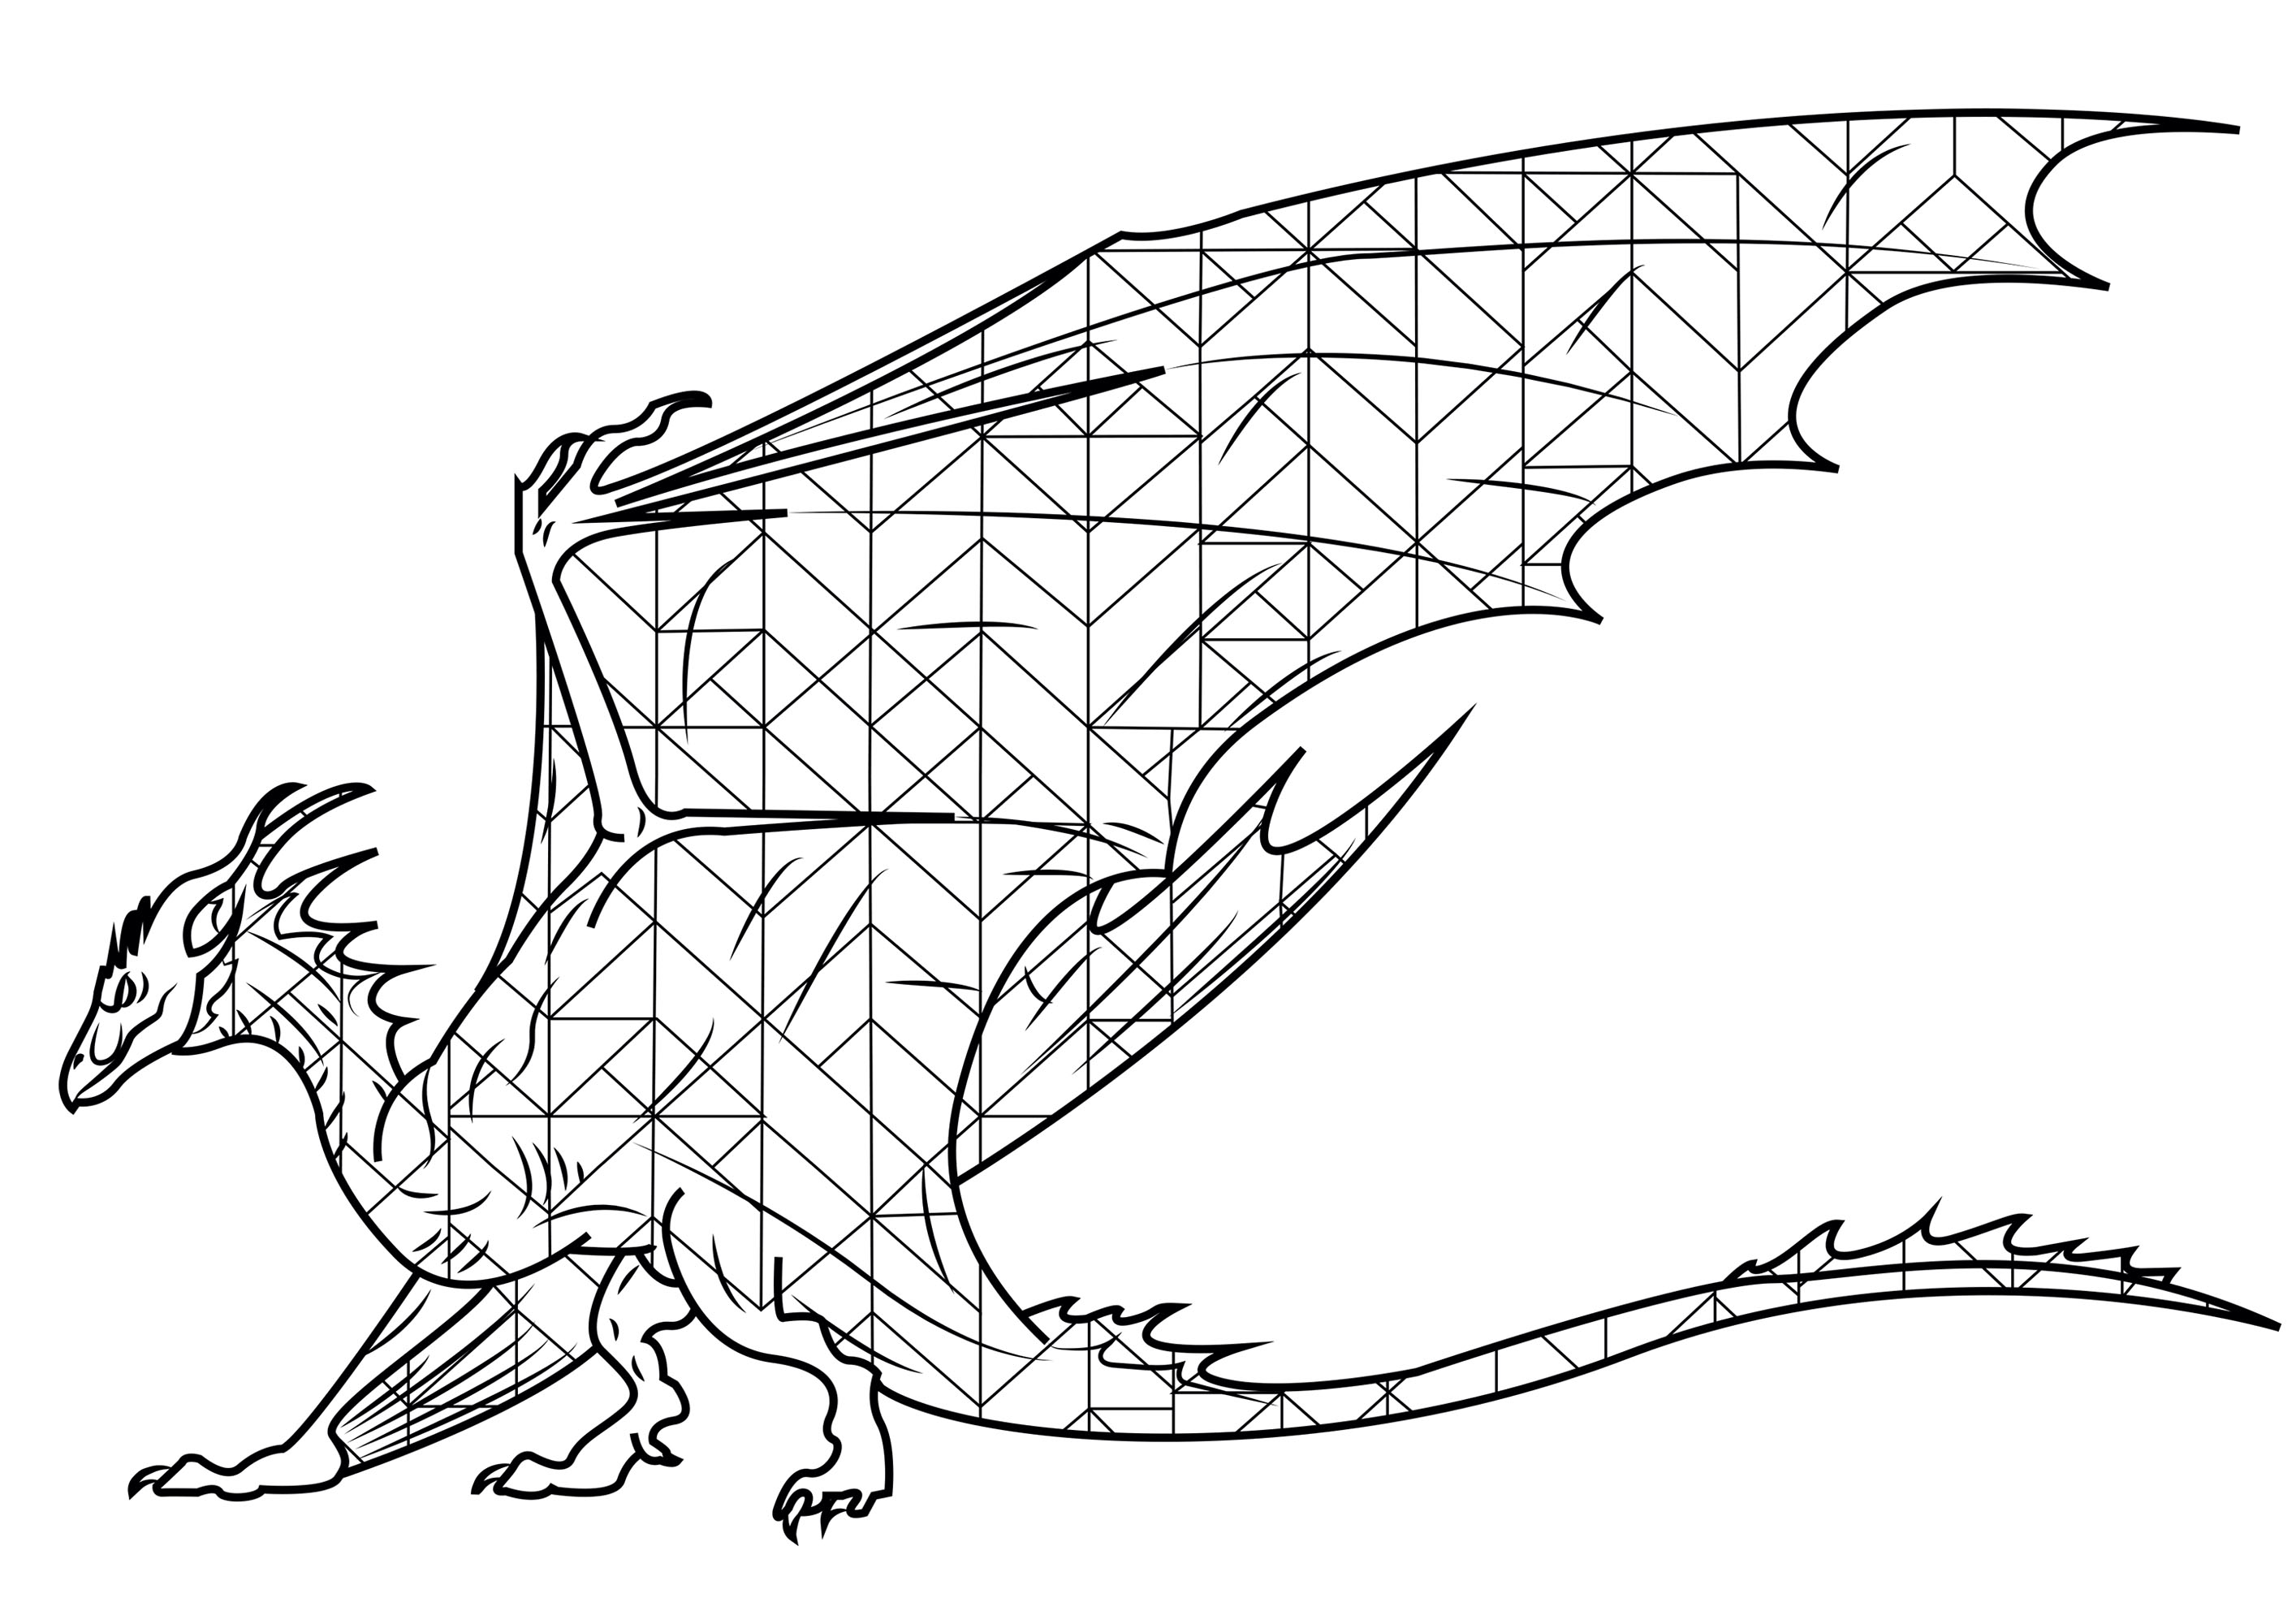 Wyvern : a legendary creature with a dragon's head and wings.